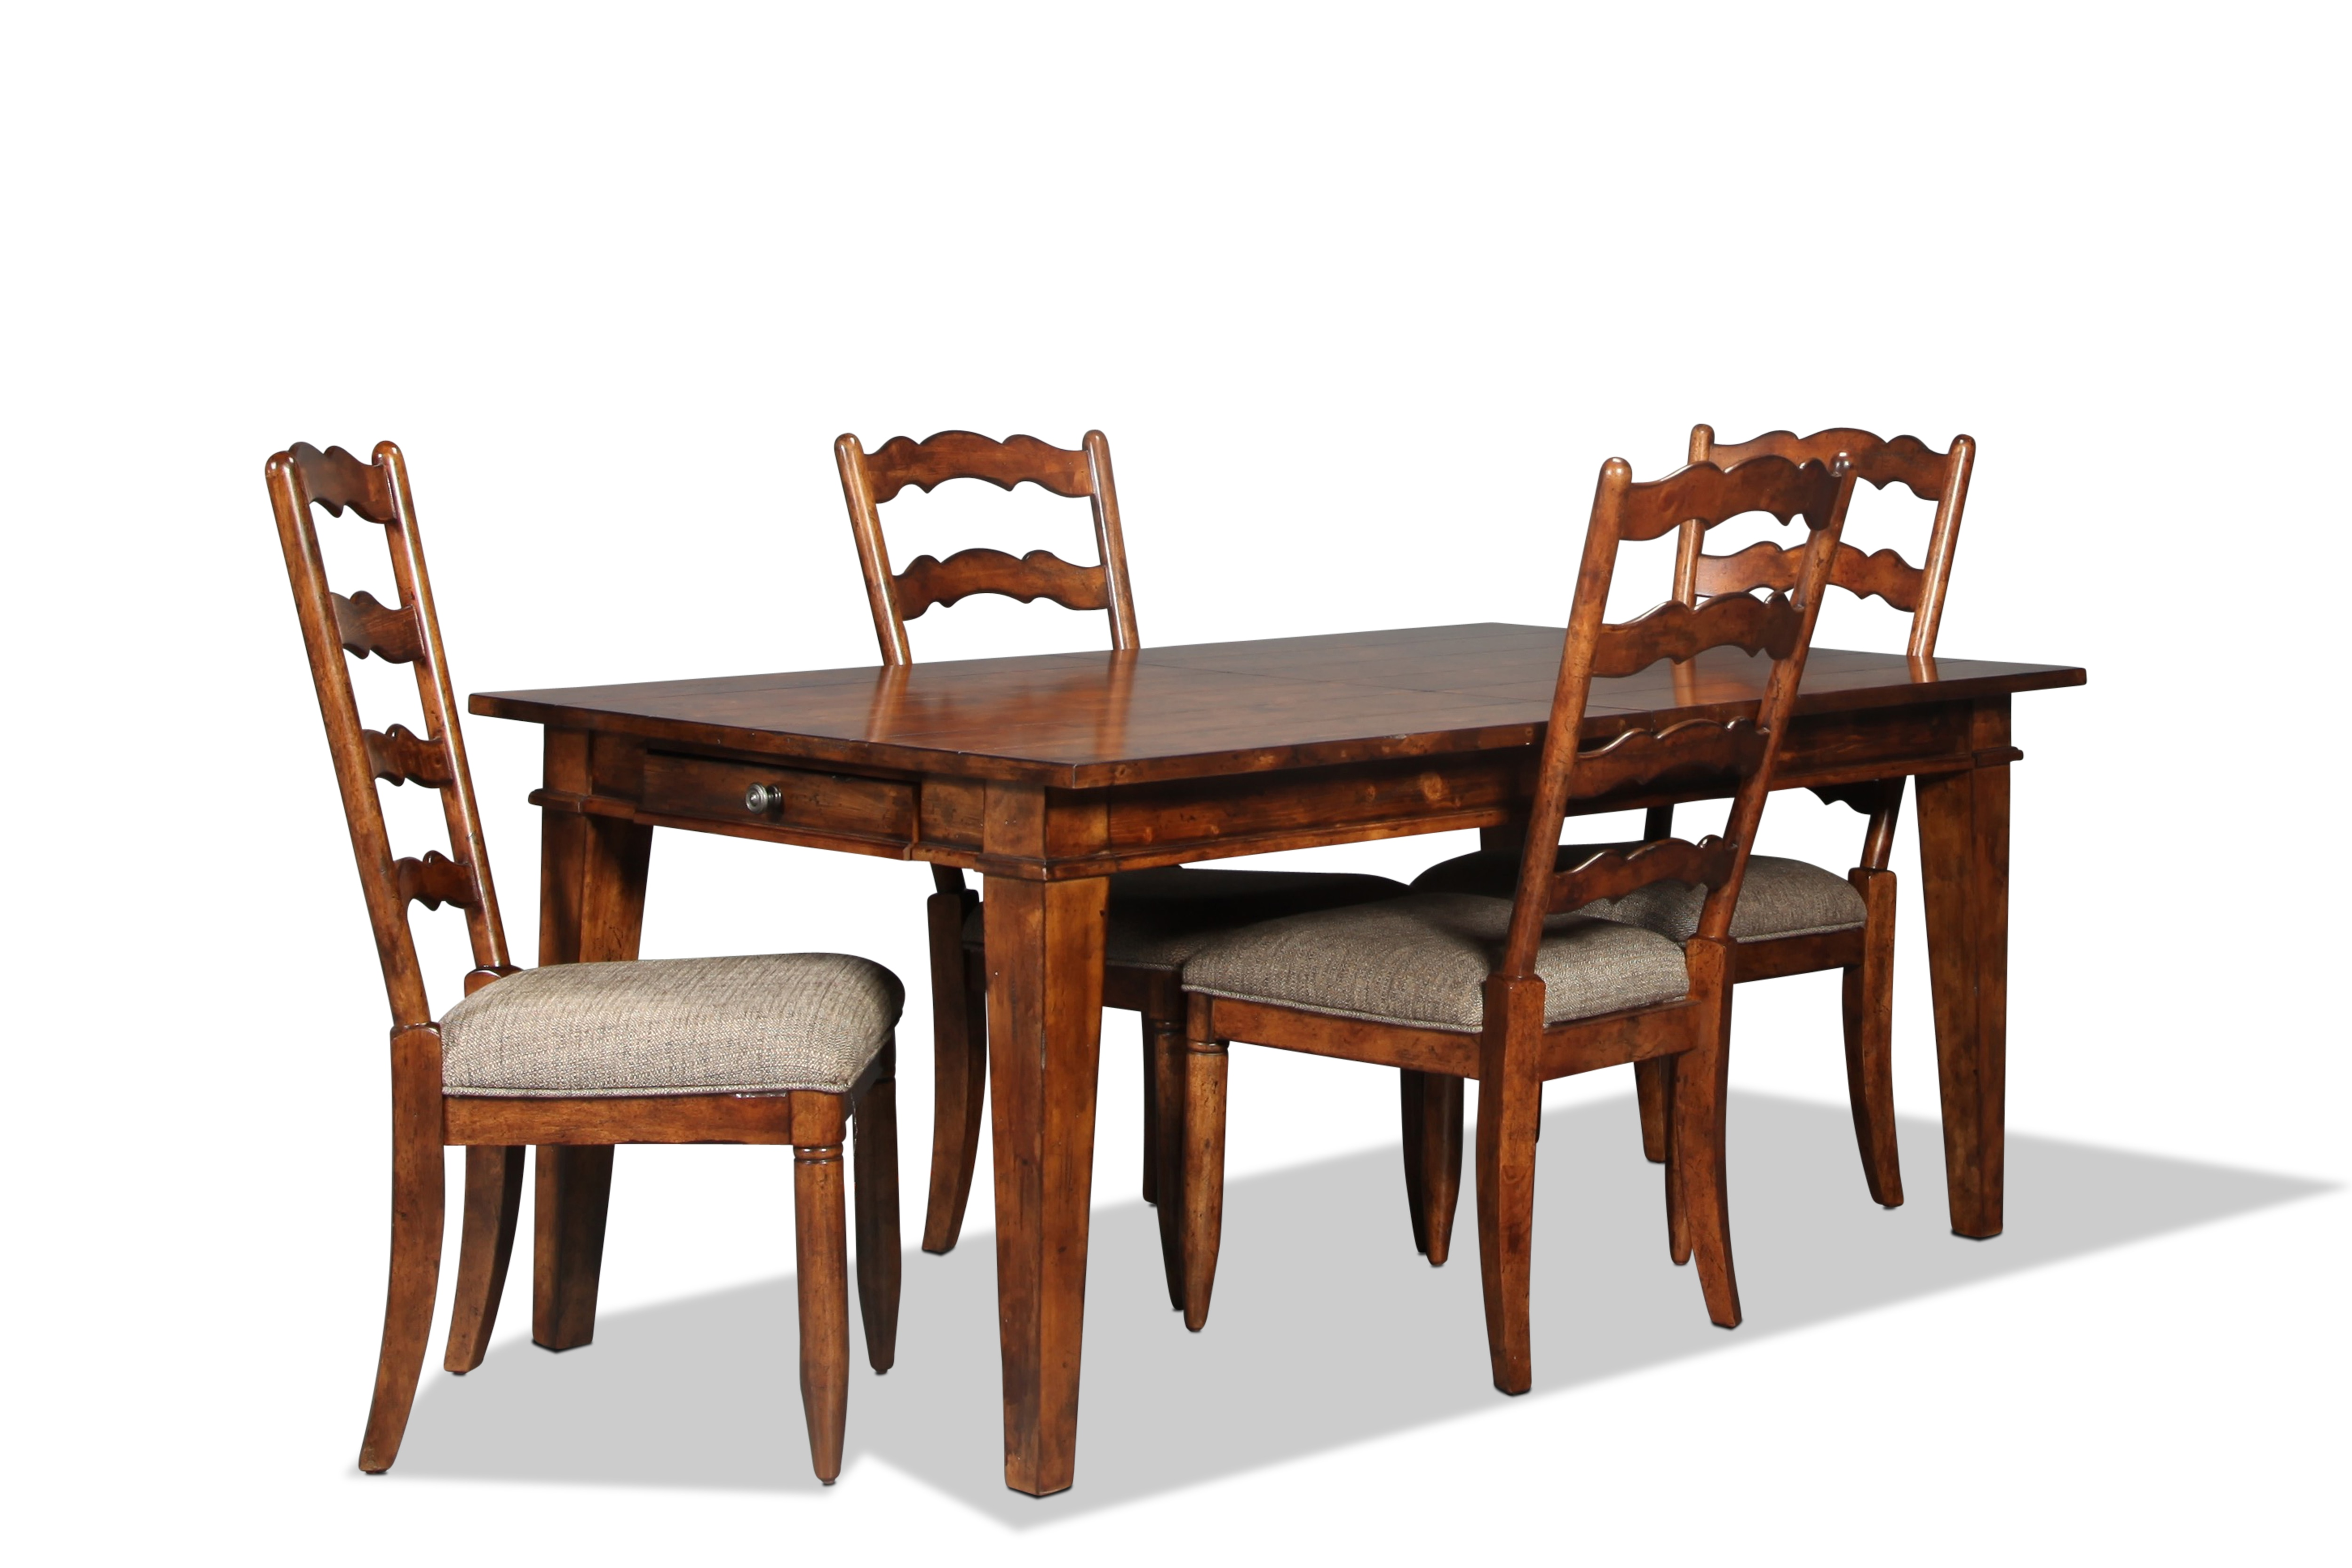 Dining Room Furniture - Elkmont Pine Table and 4 Chairs - Dark Umber